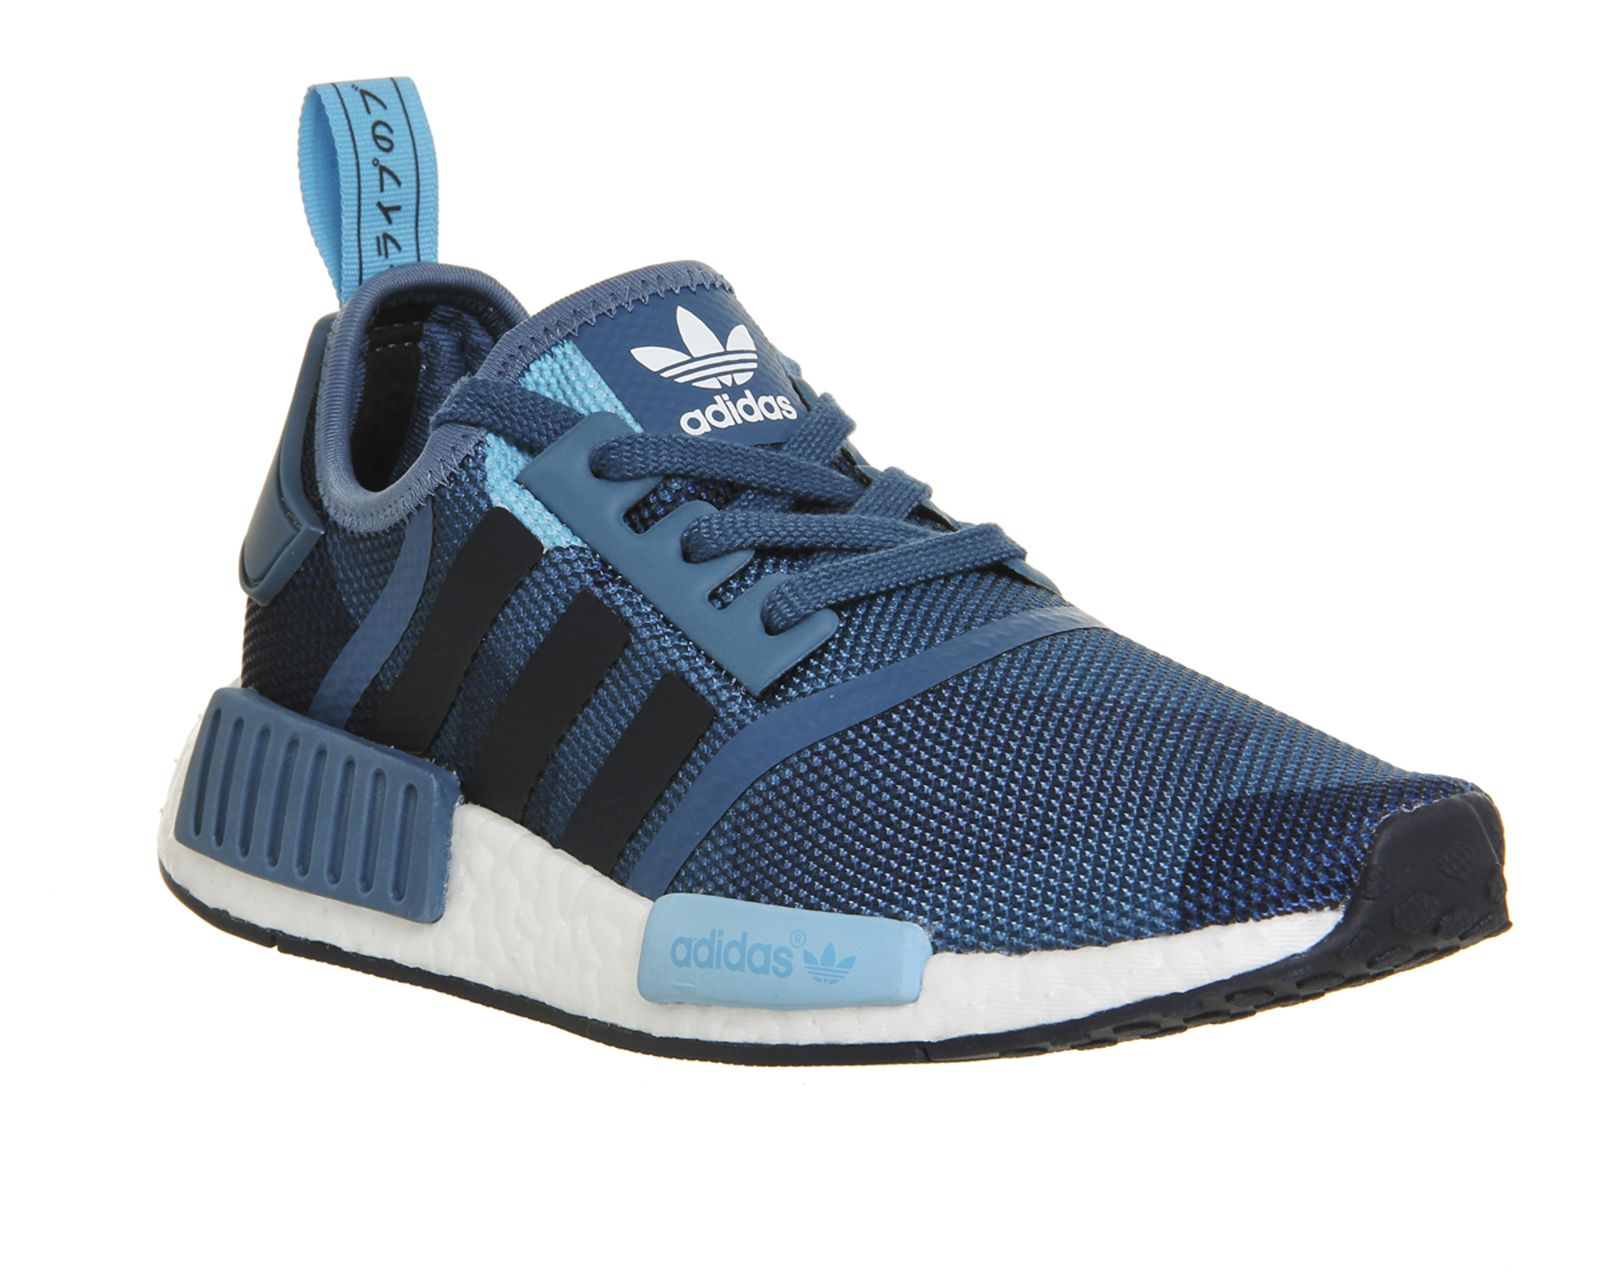 Adidas, Nmd, Black Blue Navy